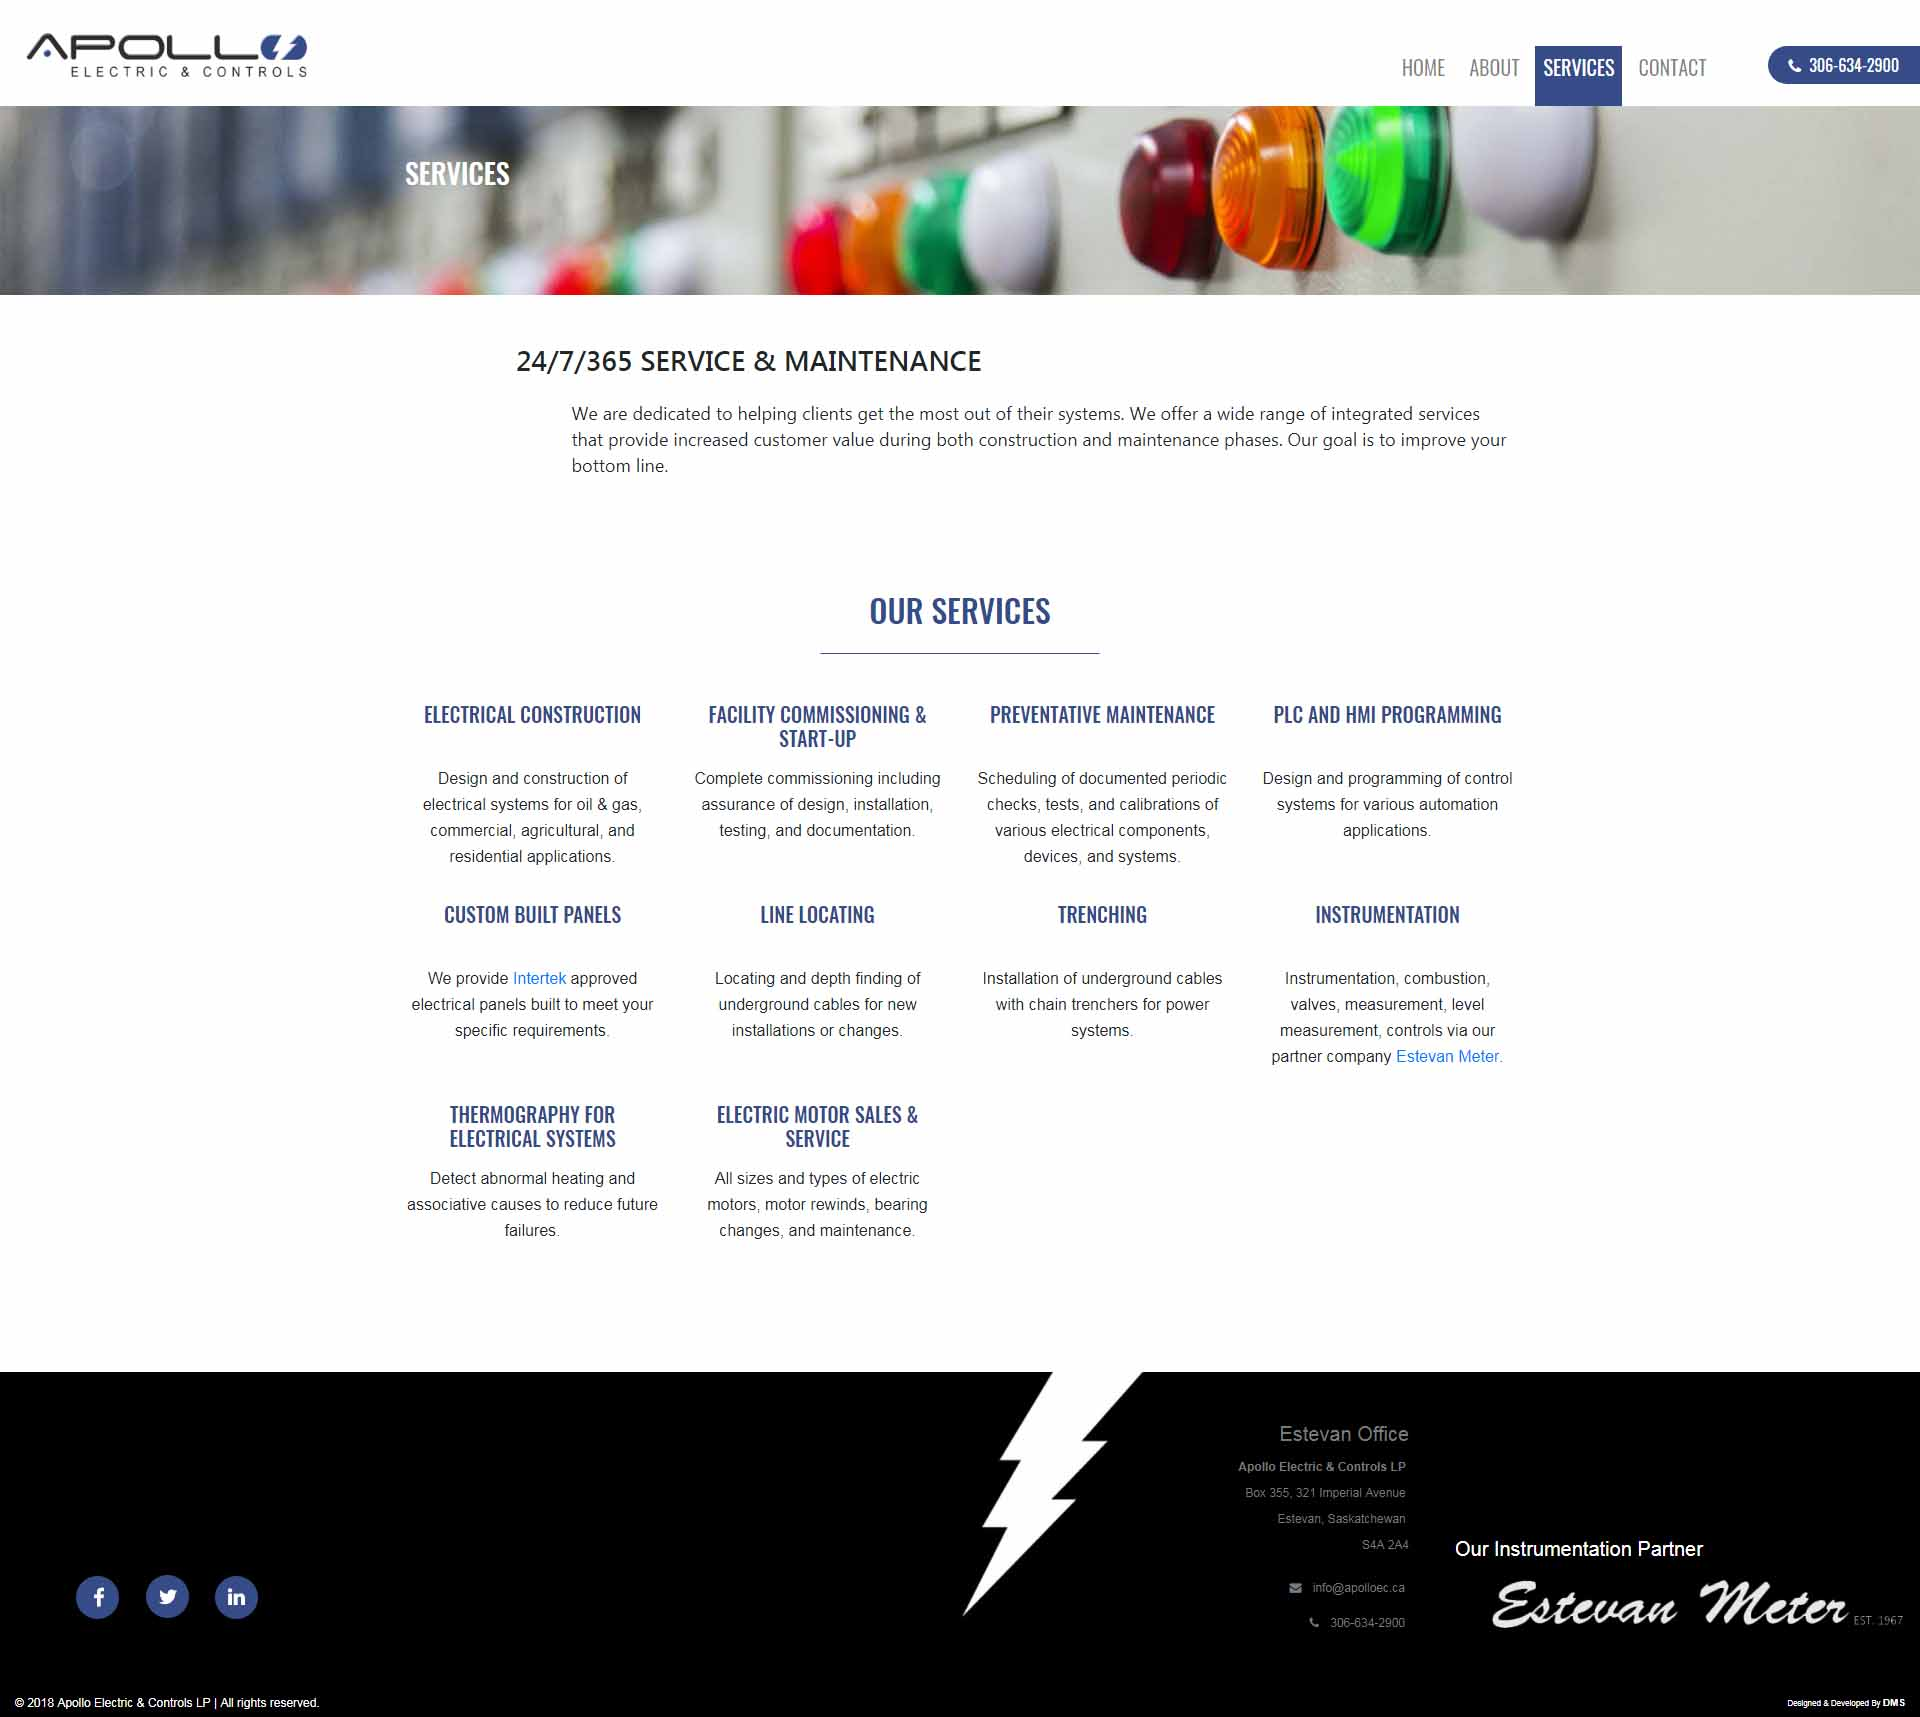 DMS Services Website Portfolio - Apollo Electric & Controls LP .